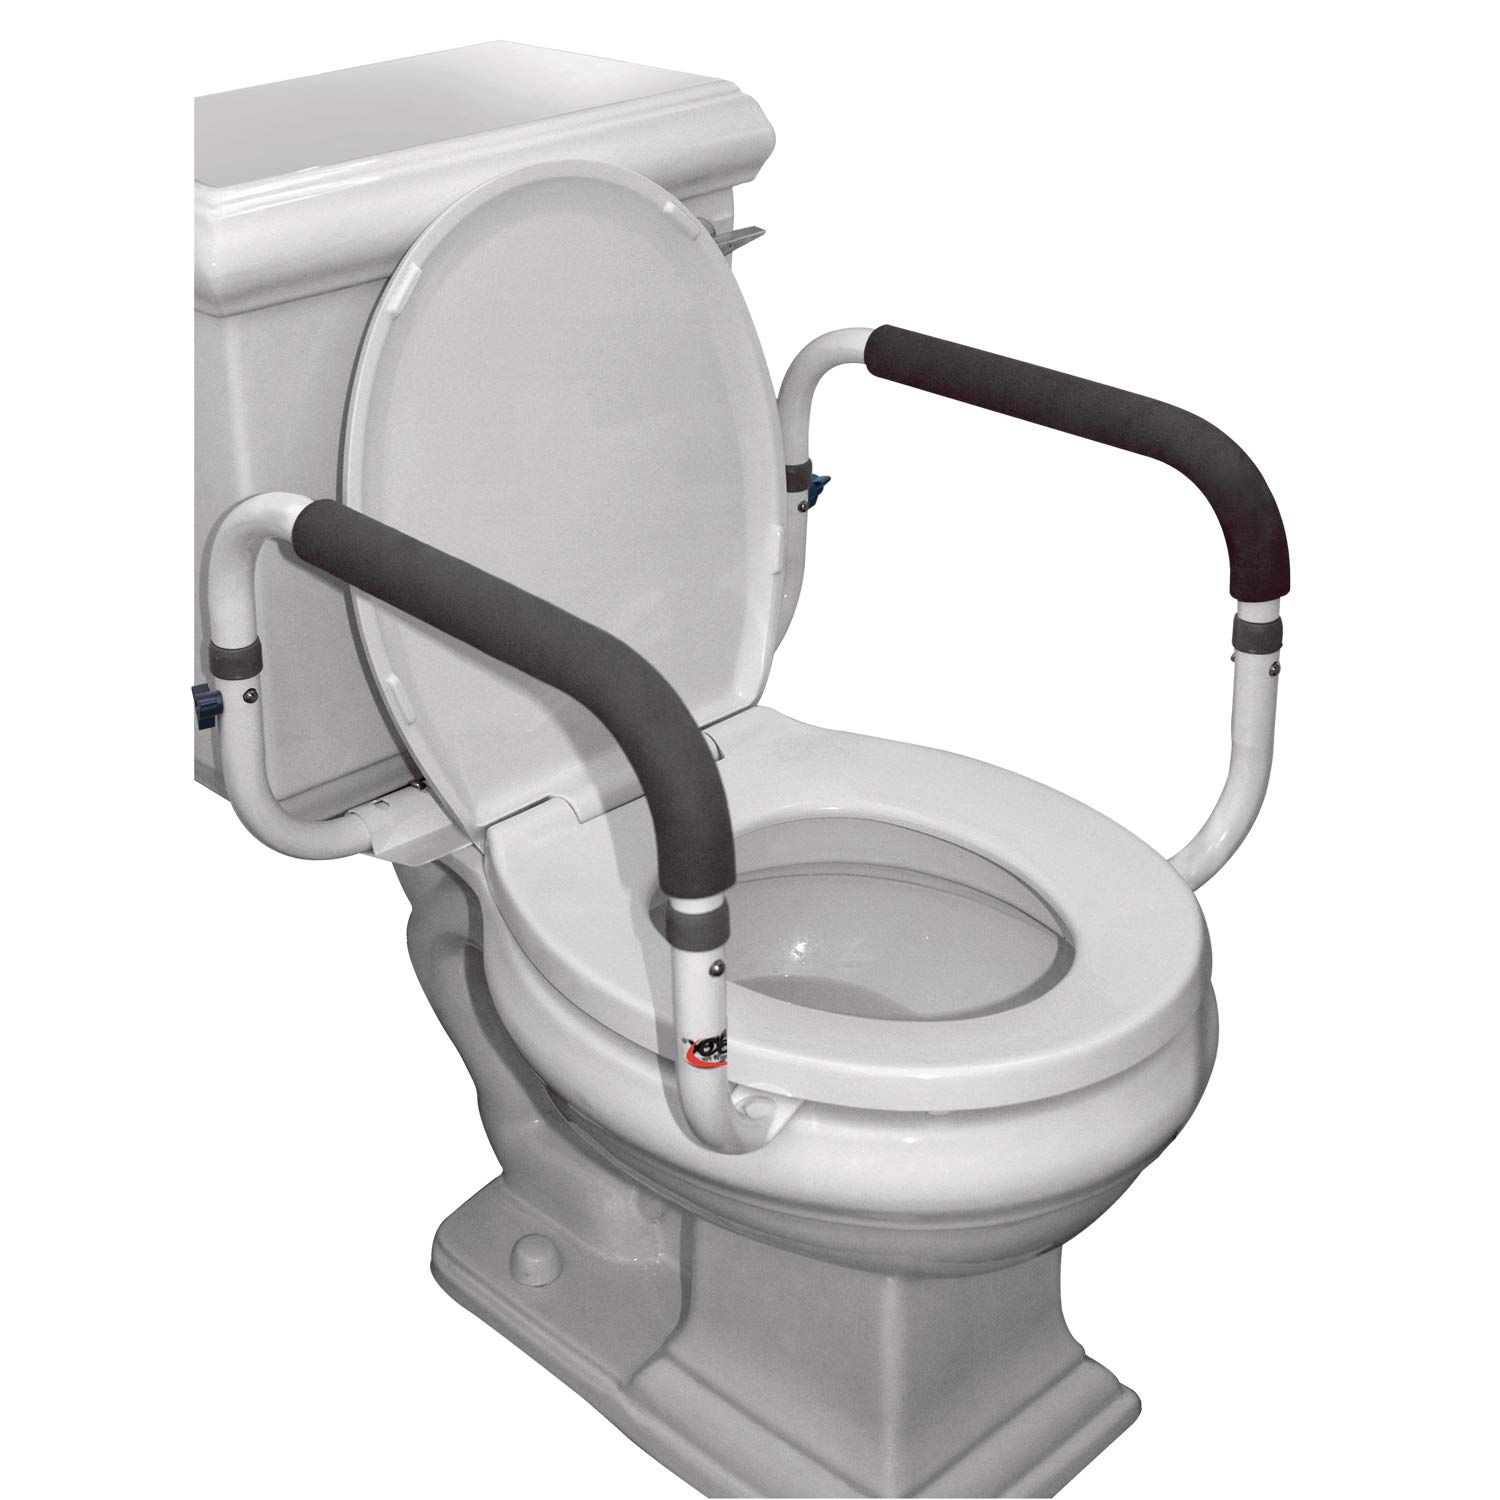 Toilet Frame With Seat.Details About Toilet Safety Frame Rail Bathroom Grab Bars Seat Medical Support Handicap Arms